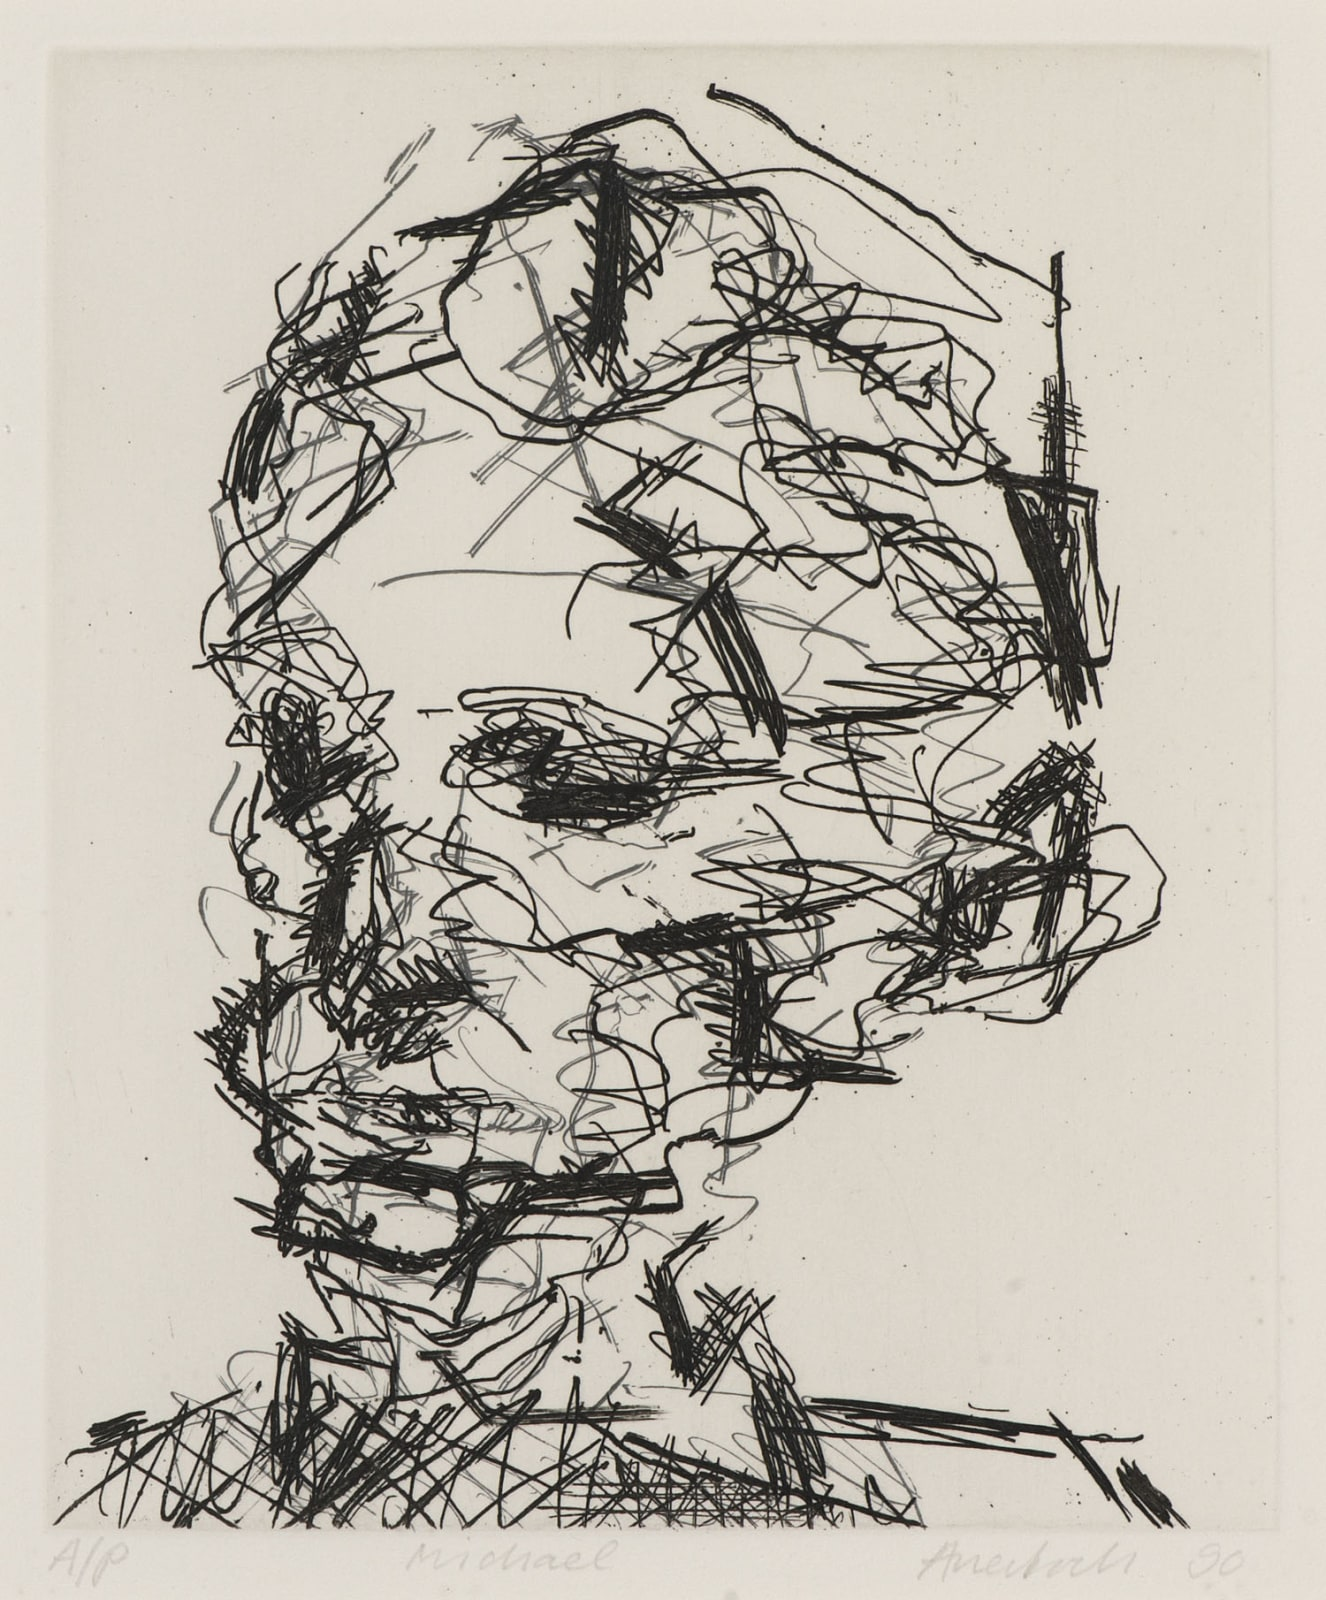 Frank Auerbach (1931-) Michael, Series: Part of Seven Portraits 1990 Etching, printed on Somerset white paper, artist's proof outside the published edition of 50 20 x 16.5 cm Ben Uri Collection © Frank Auerbach, courtesy Marlborough Fine Art To see and discover more about this artist click here